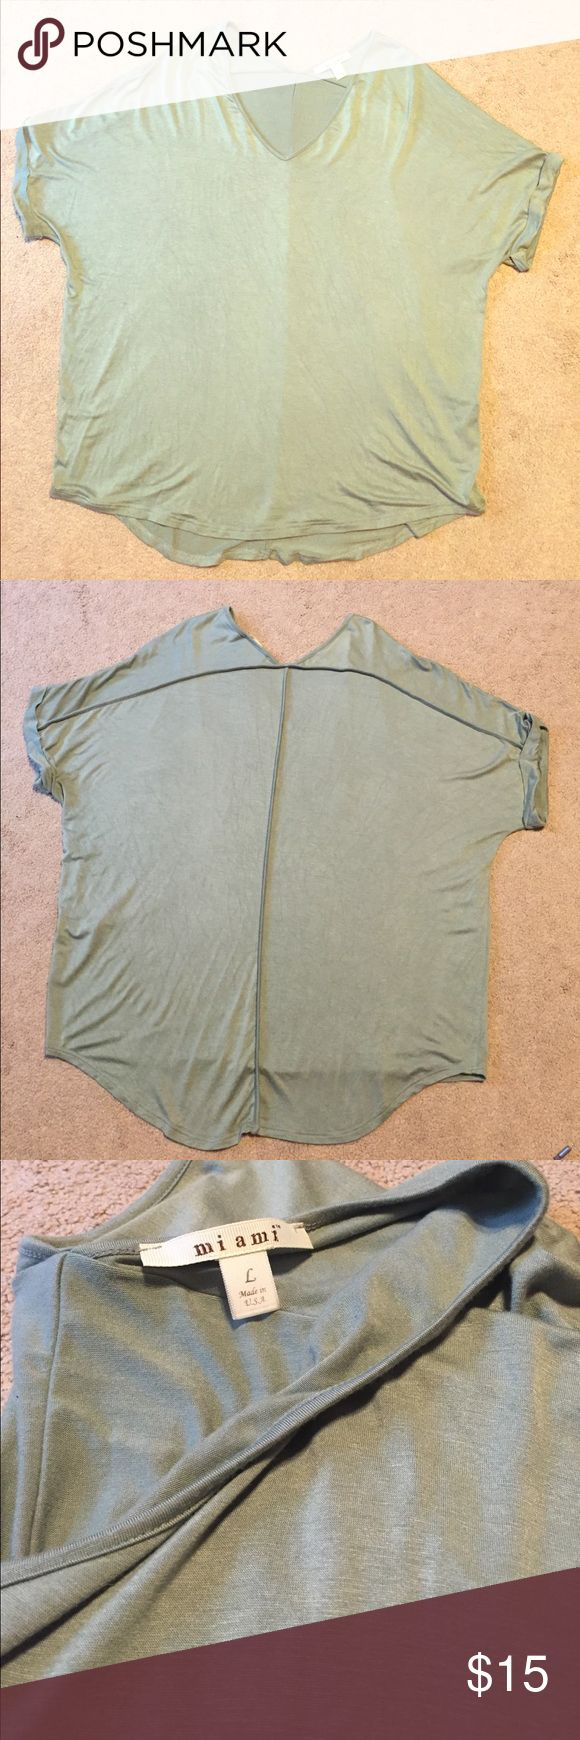 Francesca's: light green short sleeve top Never been worn, very soft, flowy top! Great condition. Francesca's Collections Tops Tees - Short Sleeve